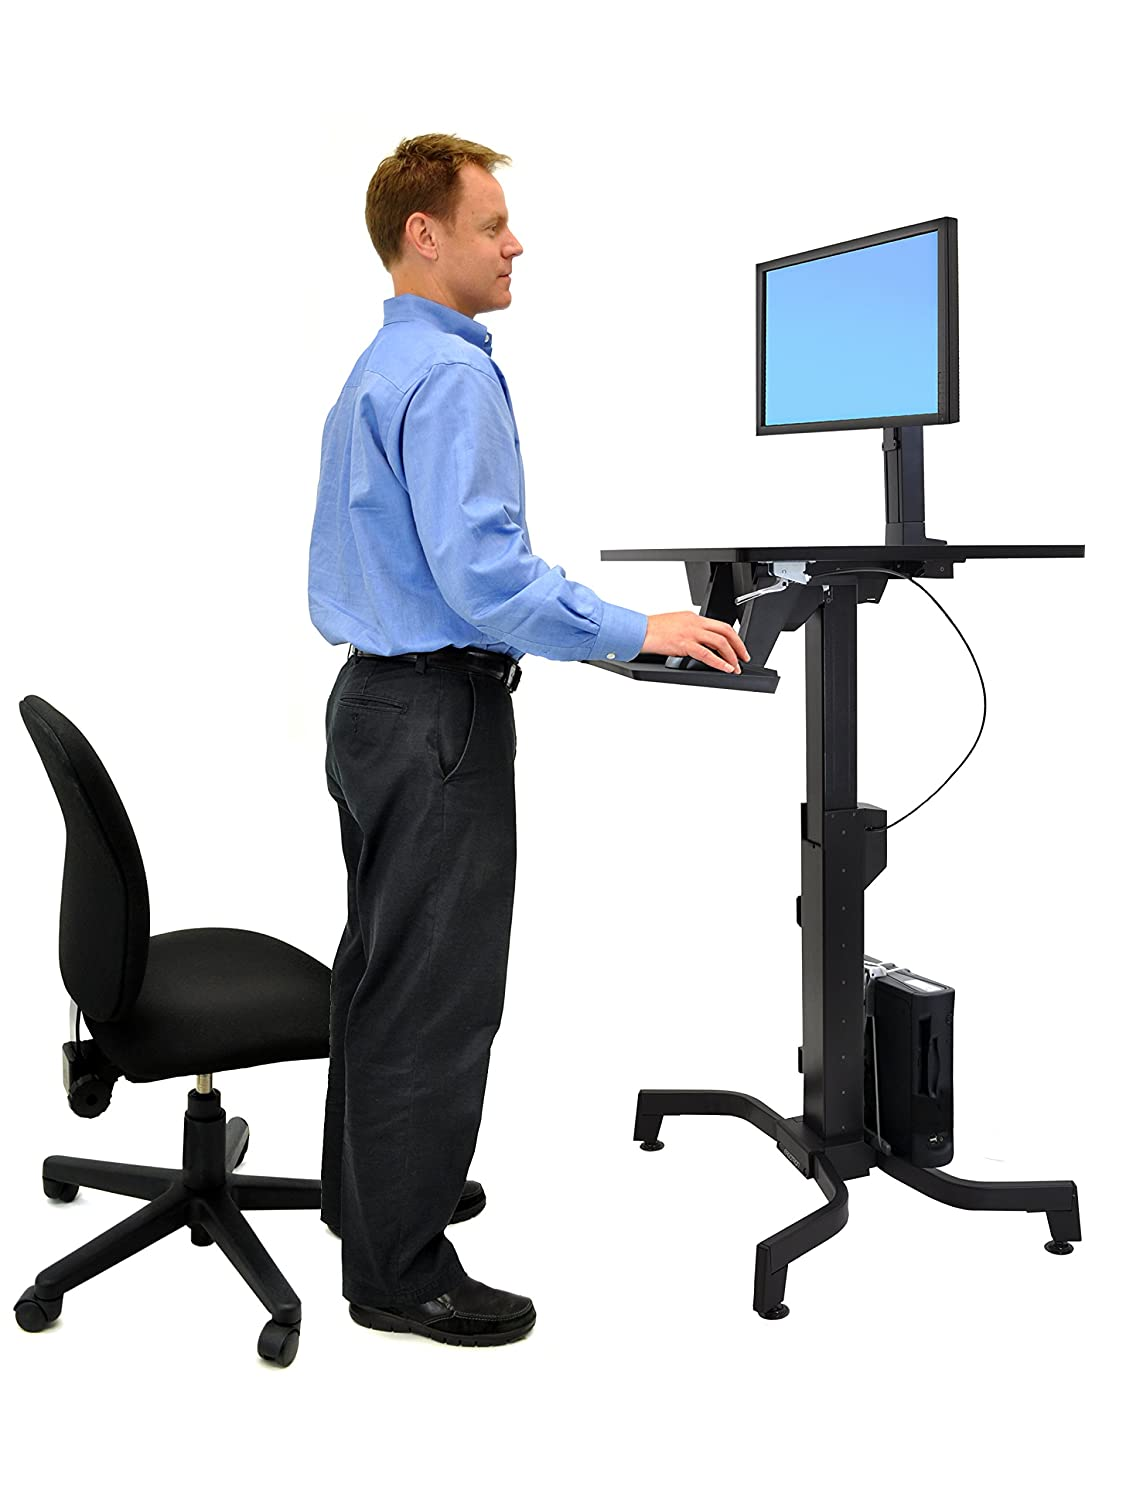 Ergotron 24-280-926 WorkFit-PD Sit-Stand Desk with 19.5-Inch Height Adjustment